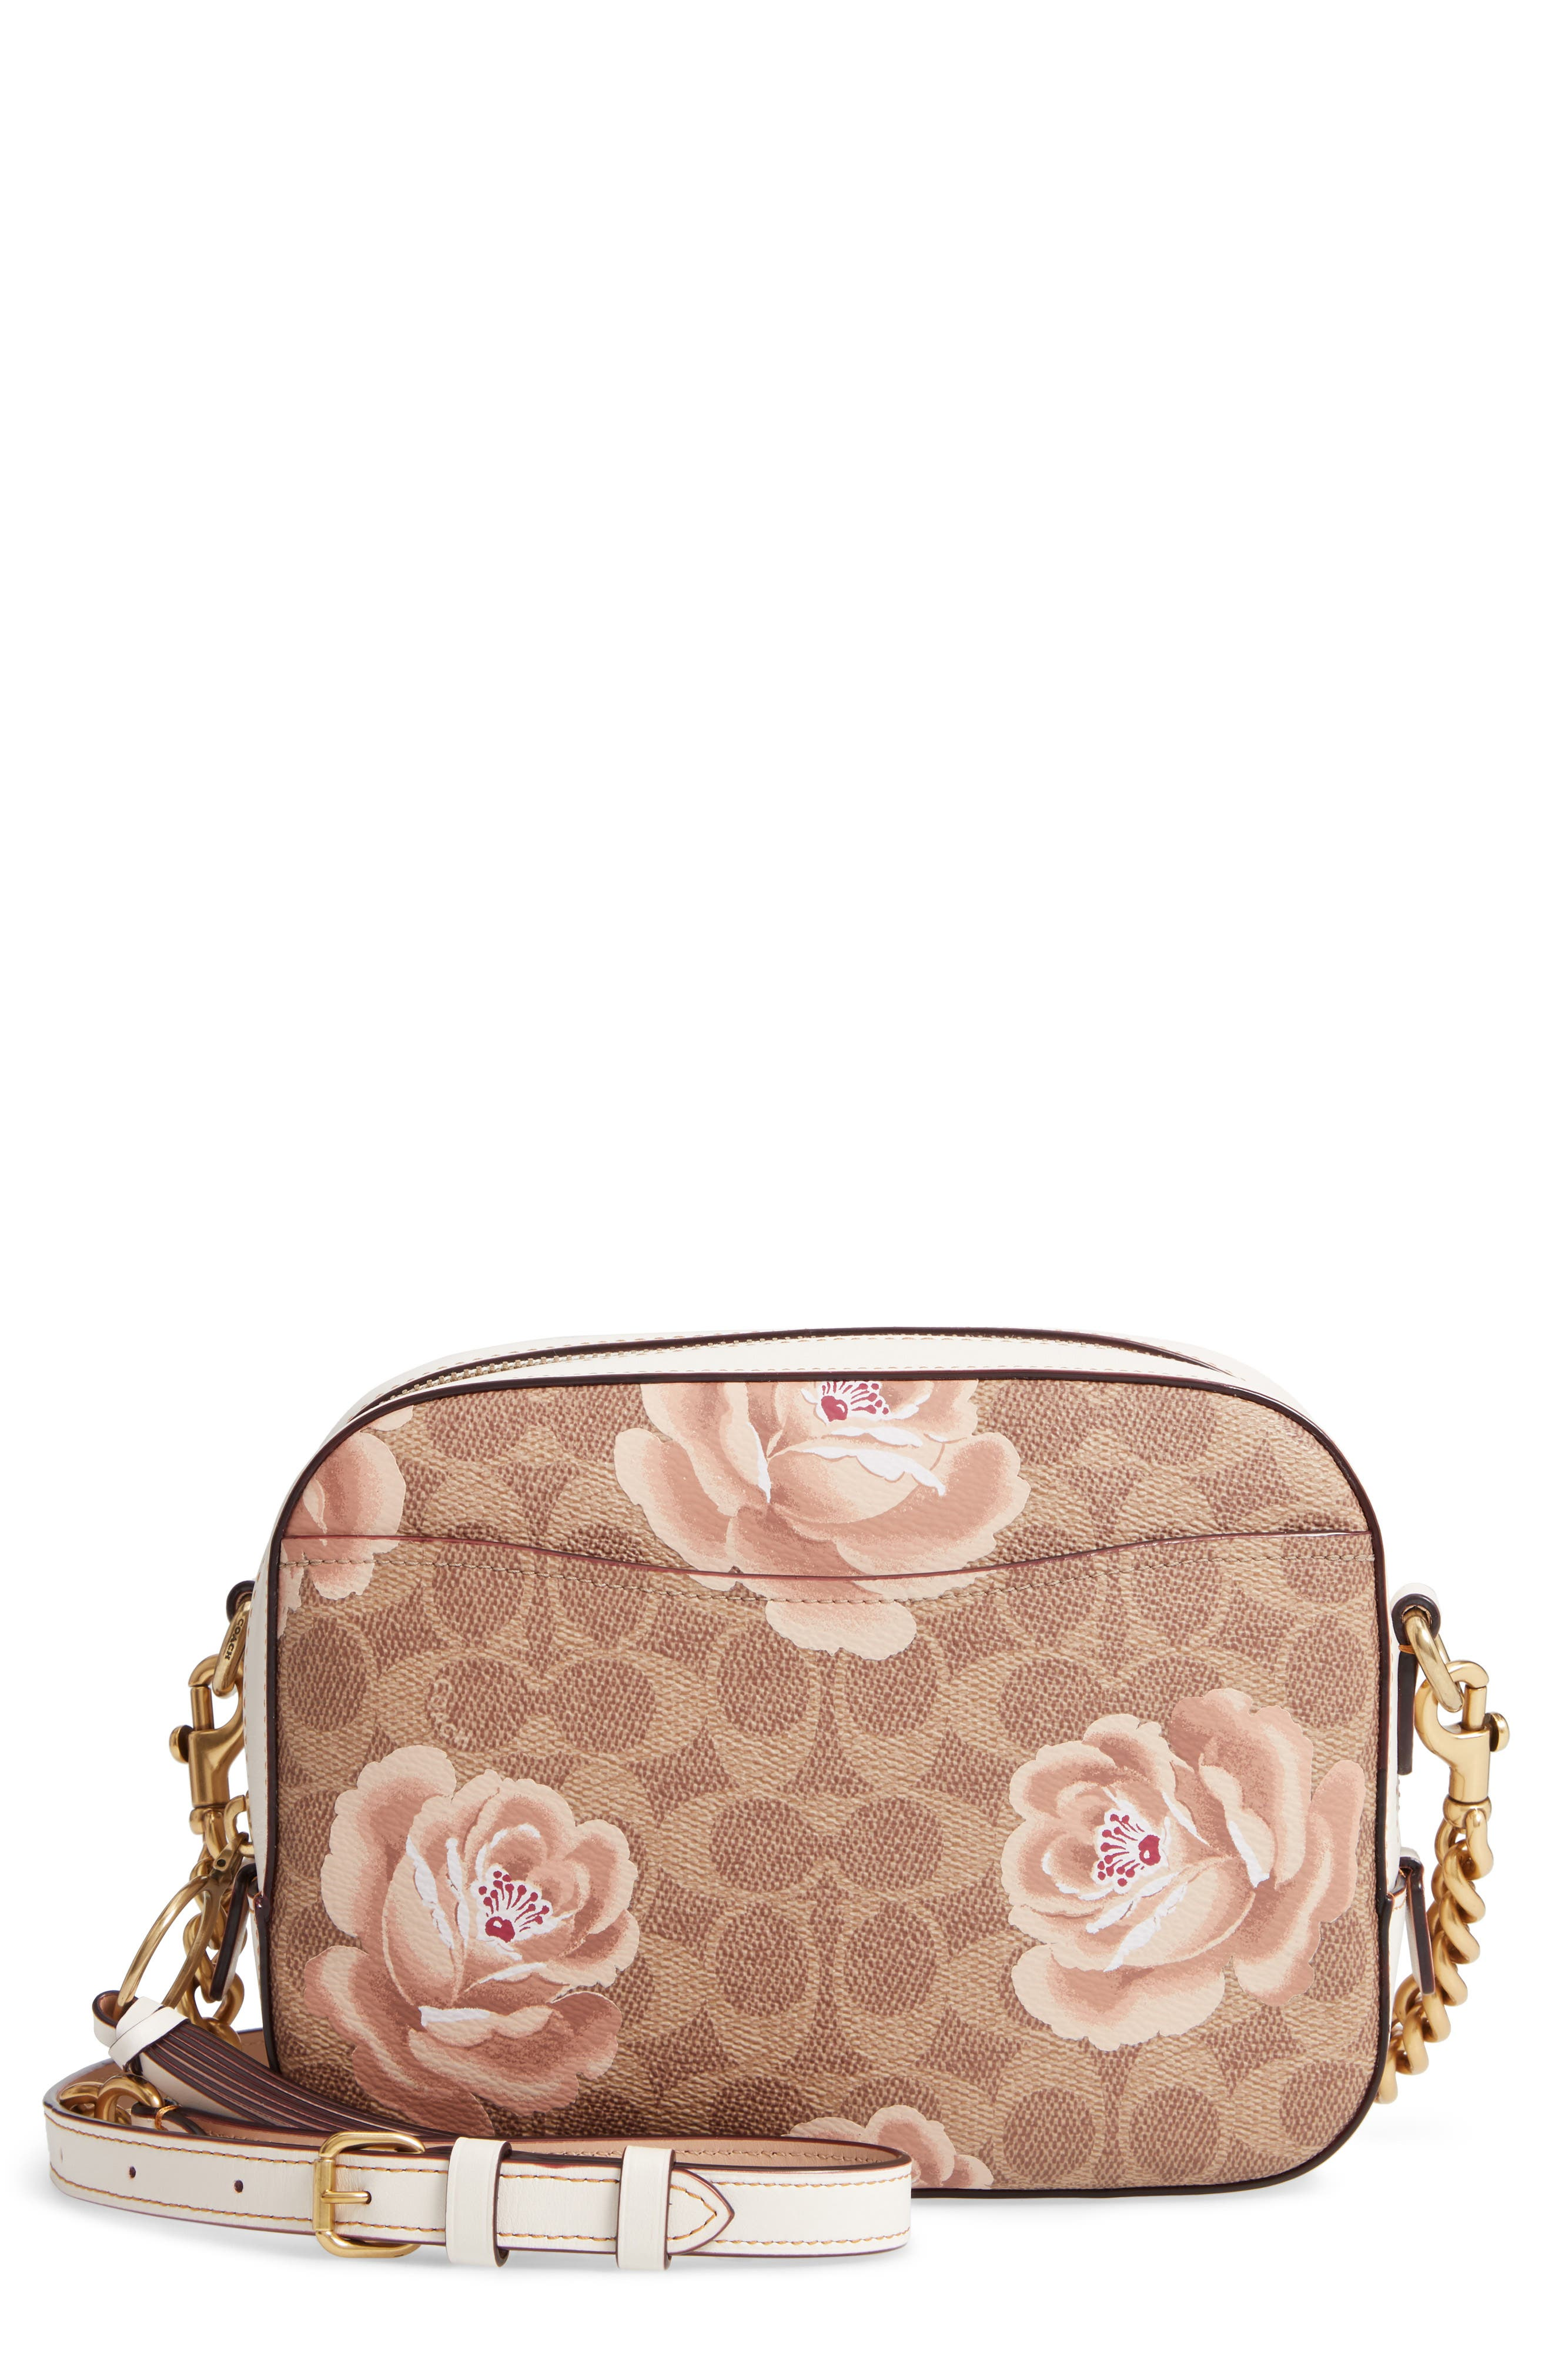 Signature Rose Coated Canvas Camera Bag,                             Main thumbnail 1, color,                             250